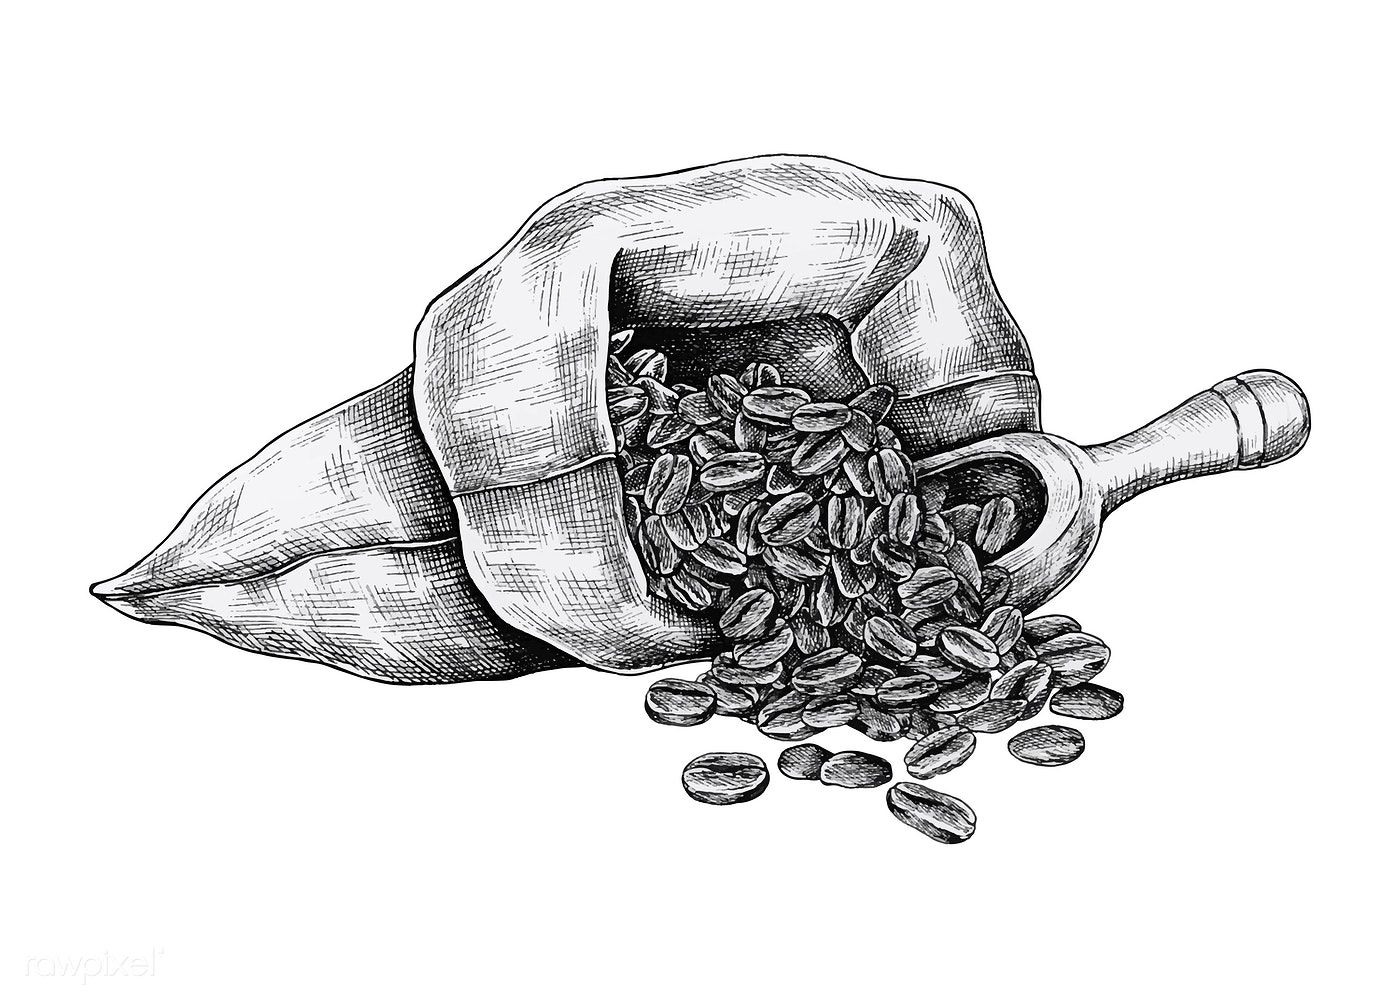 Download premium vector of Hand drawn coffee beans in a